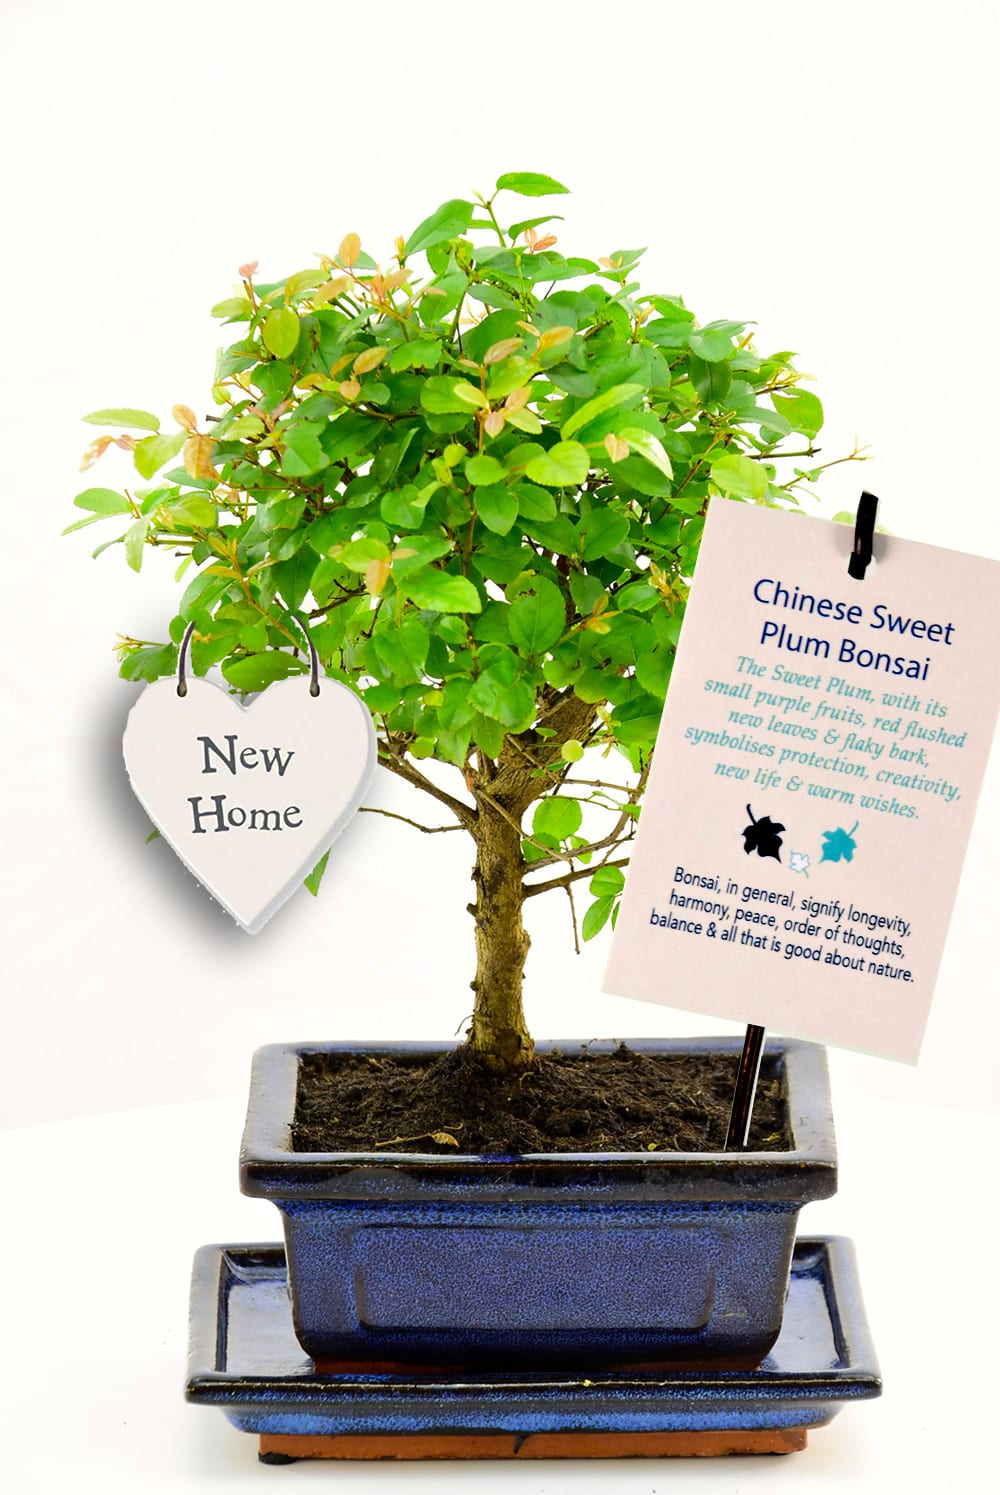 Fabulous bonsai house warming gift which symbolises new beginnings